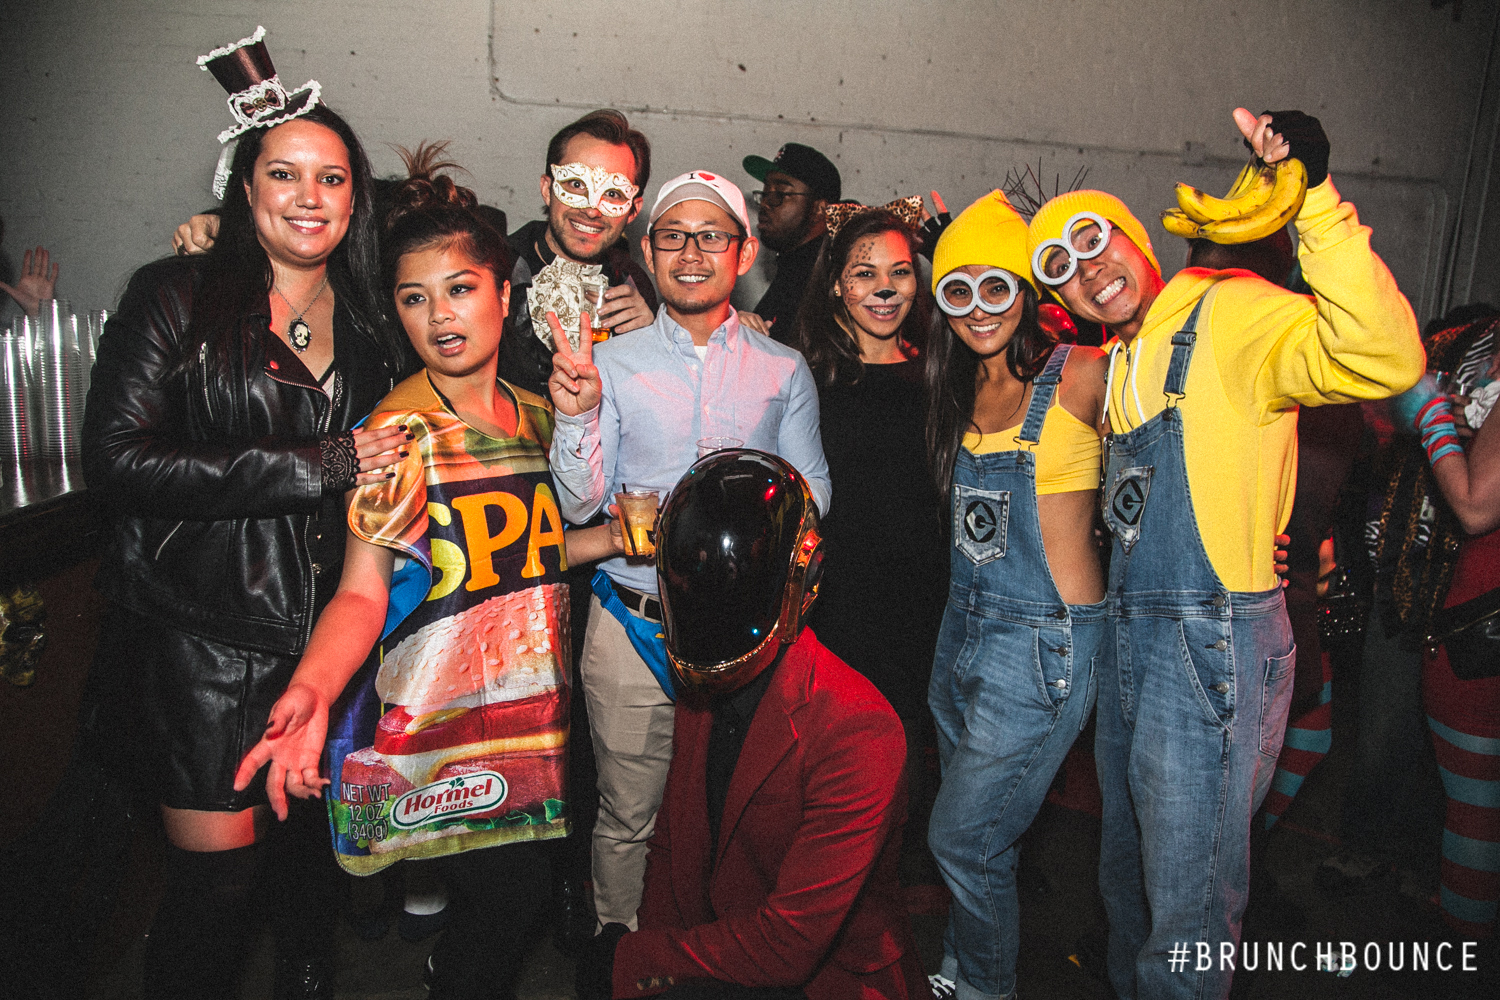 brunch-bounce-x-adidas-originals-halloween-103115_22766377771_o.jpg